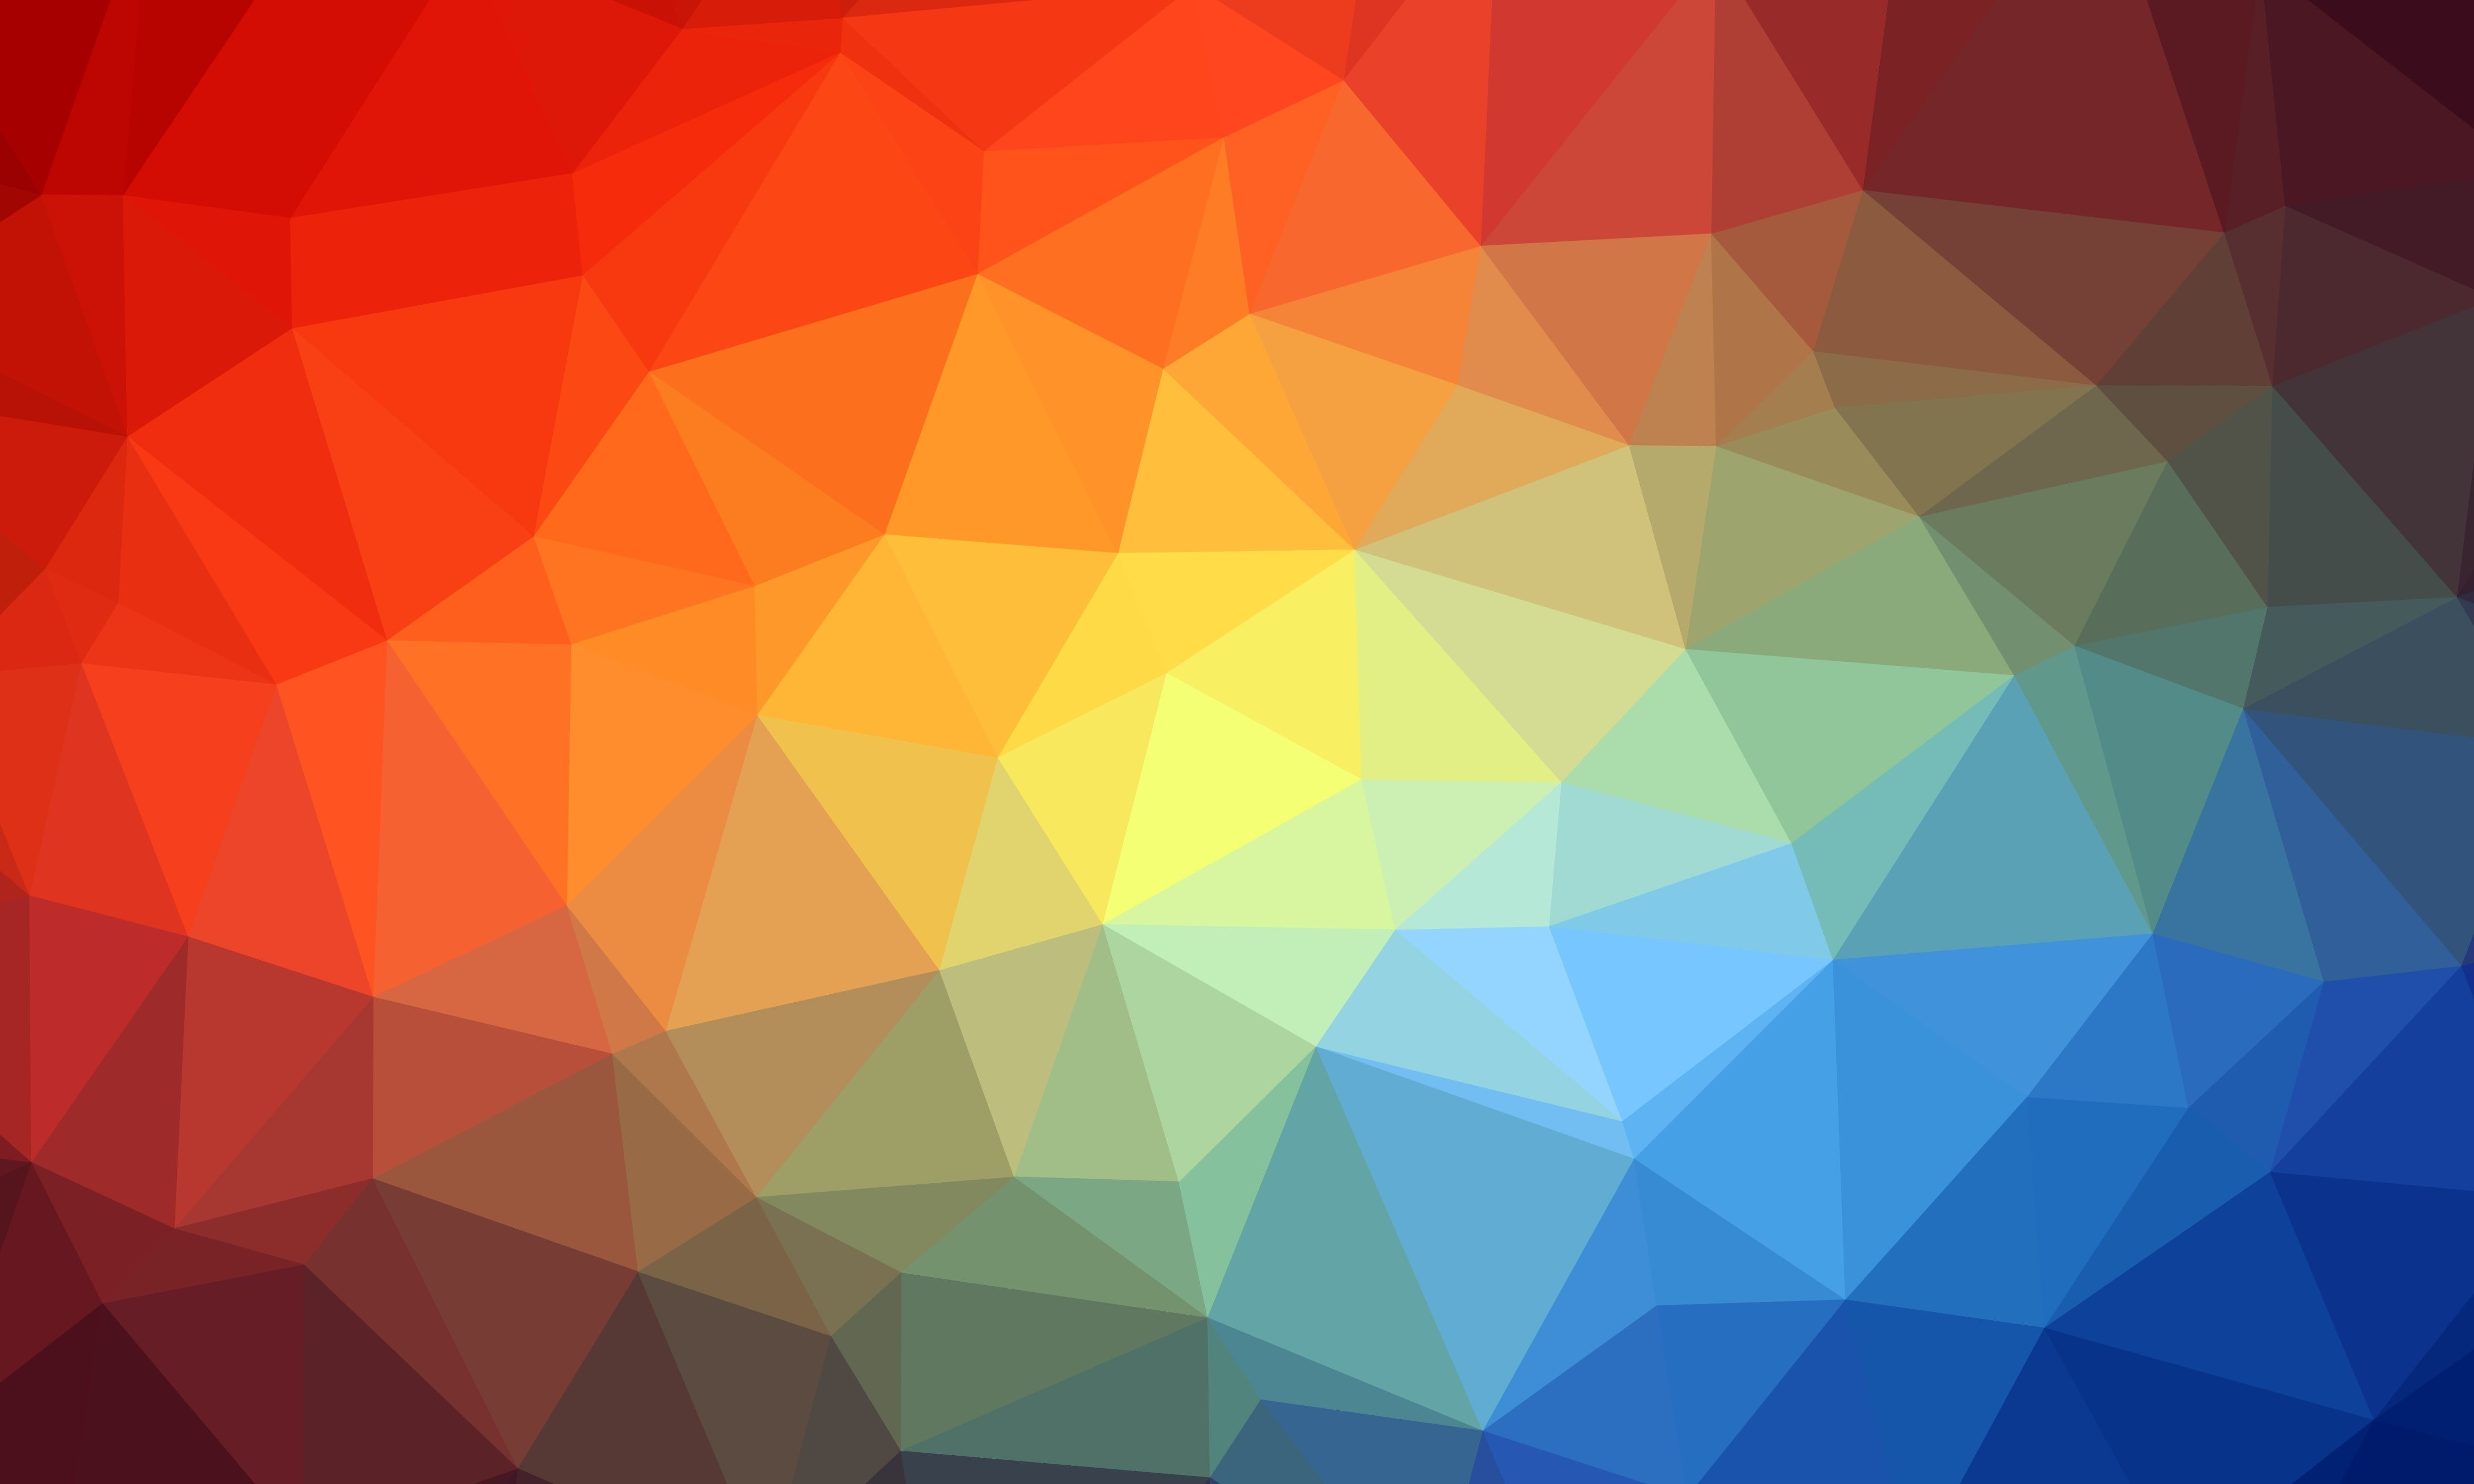 Triangle Geometric Multicolored 4k Wallpaper Hdwallpaper Desktop In 2020 Geometric Wallpaper Geometric Abstract